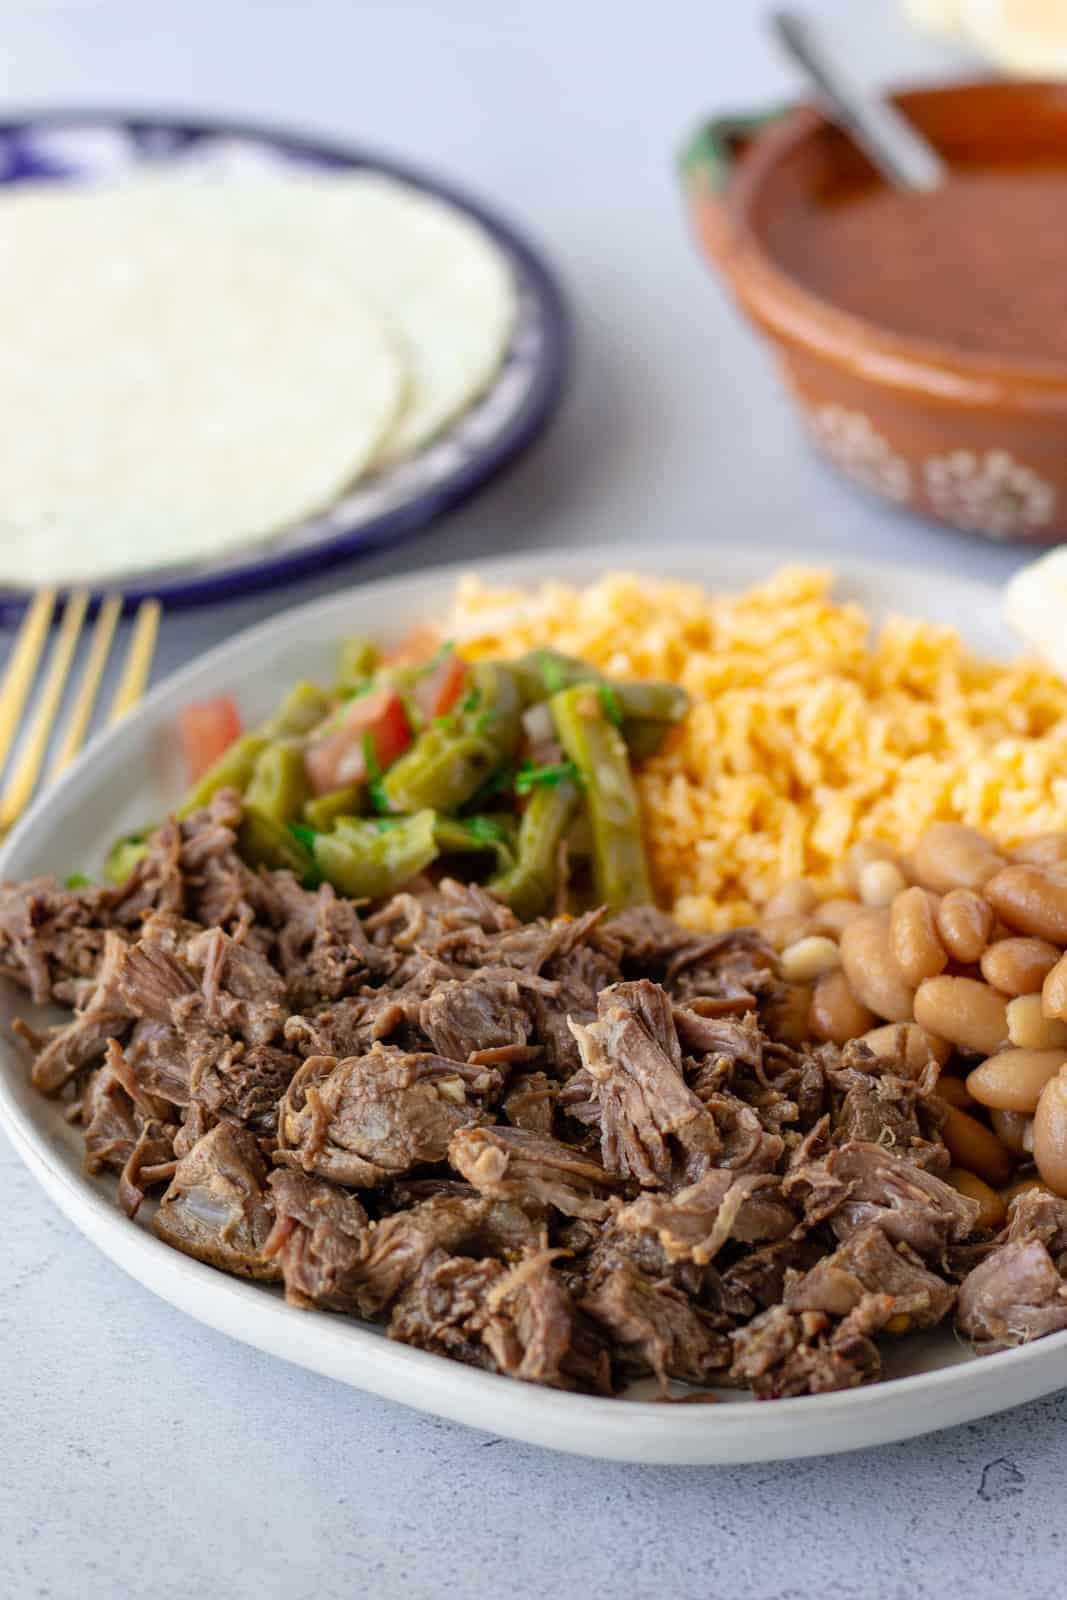 Shredded beef on a plate with rice, beans, cactus salad, and a side of tortillas on a plate.